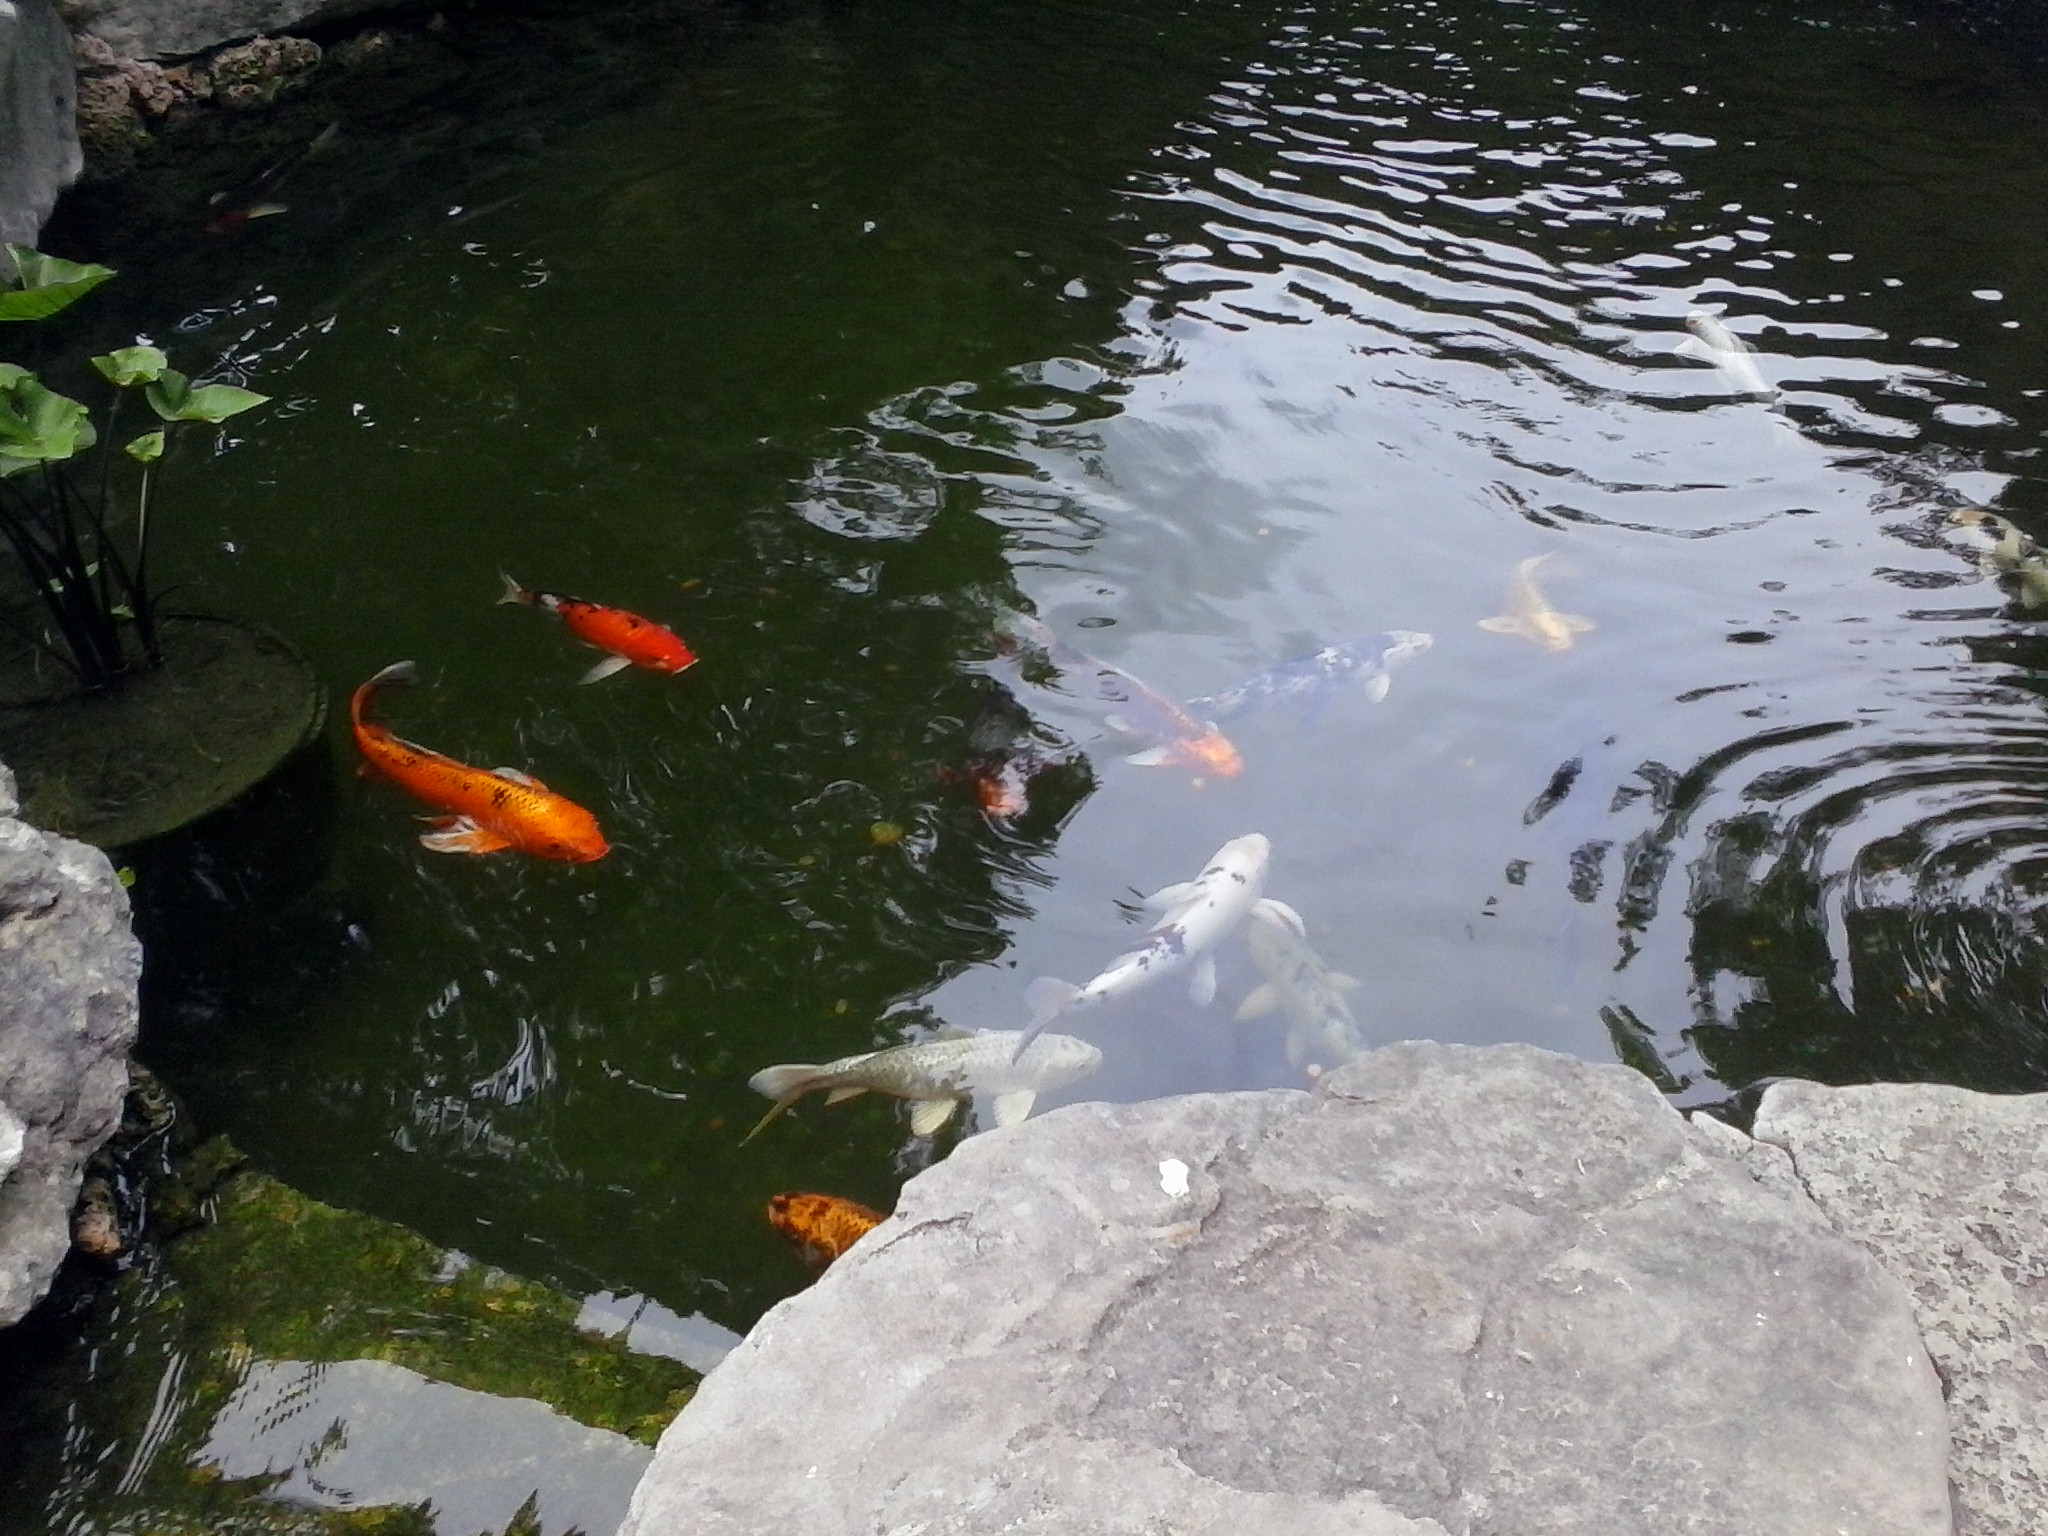 Genesis Pool koi pond in A Woman's Garden.